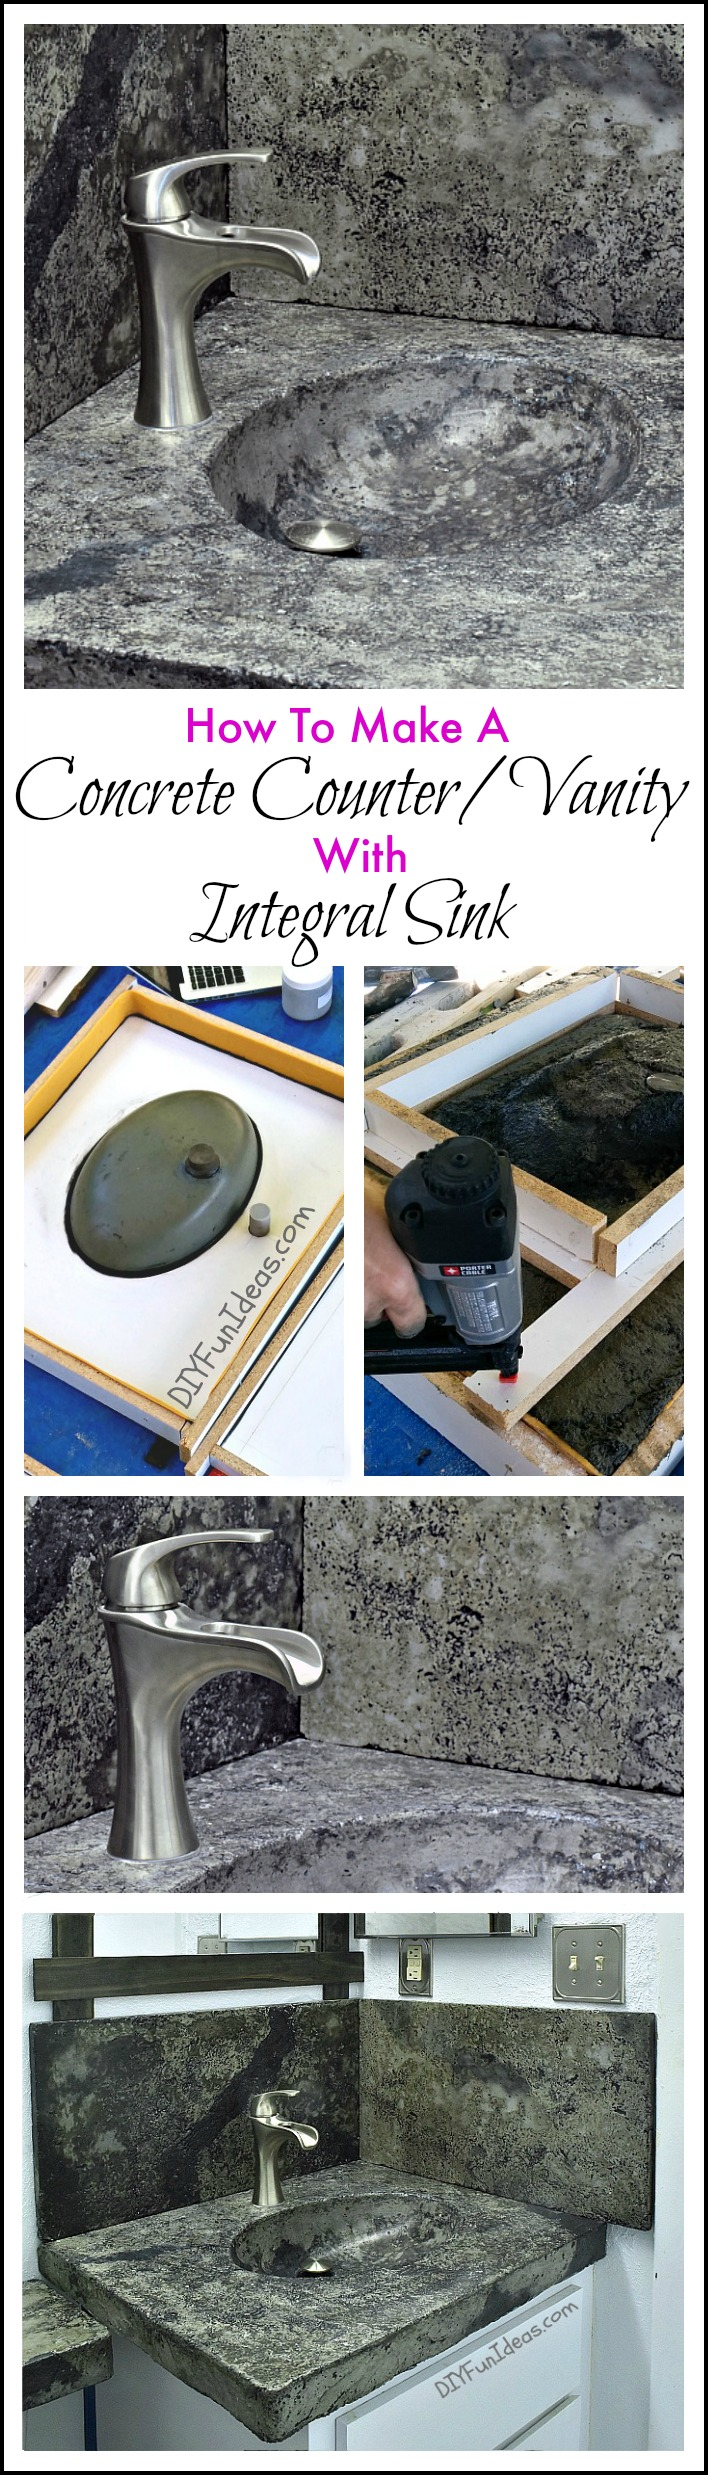 Making Your Own Concrete Countertop How To Make A Concrete Countertop Or Vanity With Integral Sink